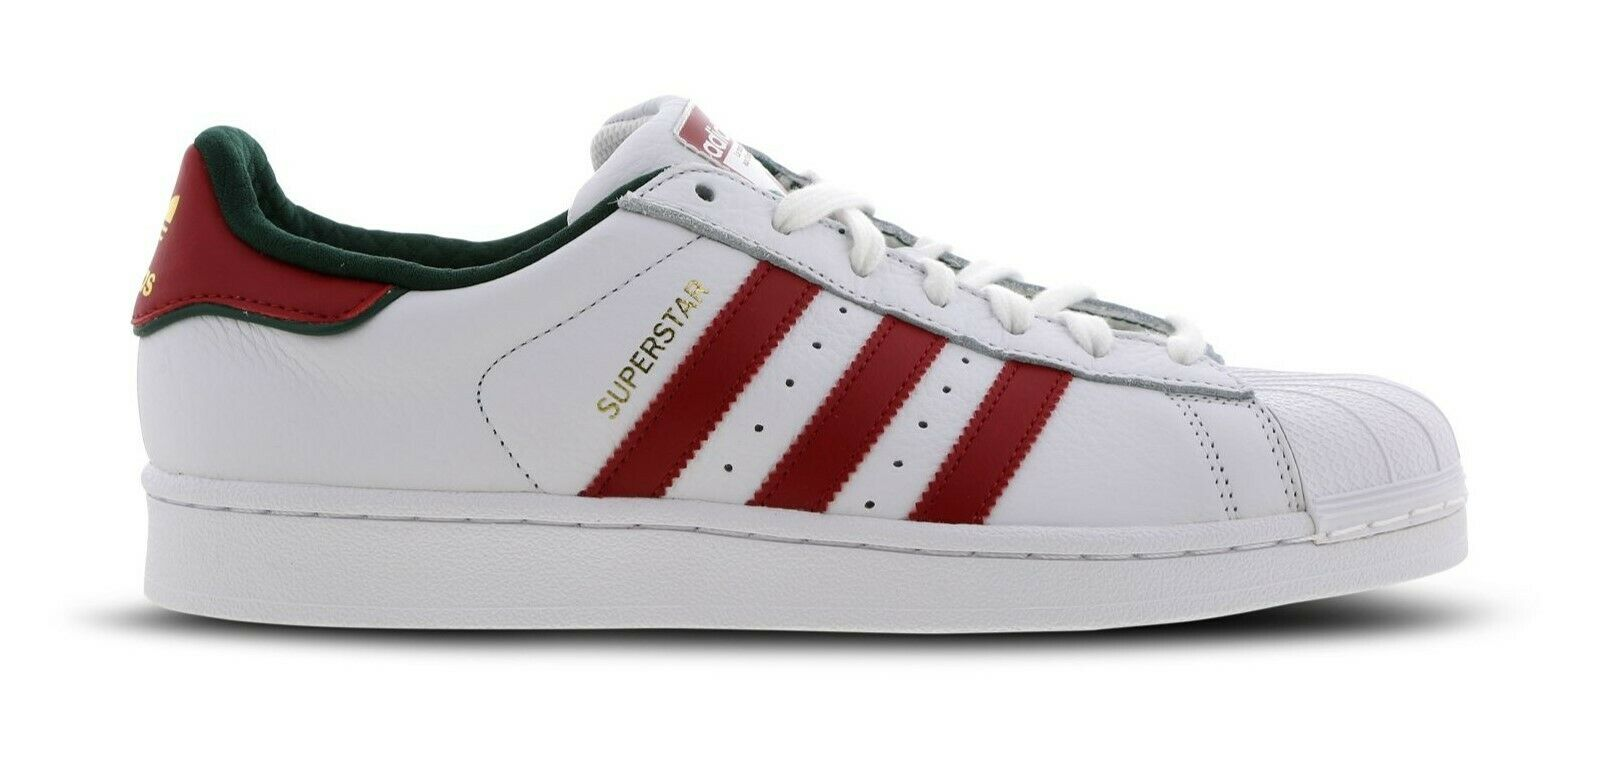 [Adidas] D96974 Superstar Men Women shoes Sneakers White